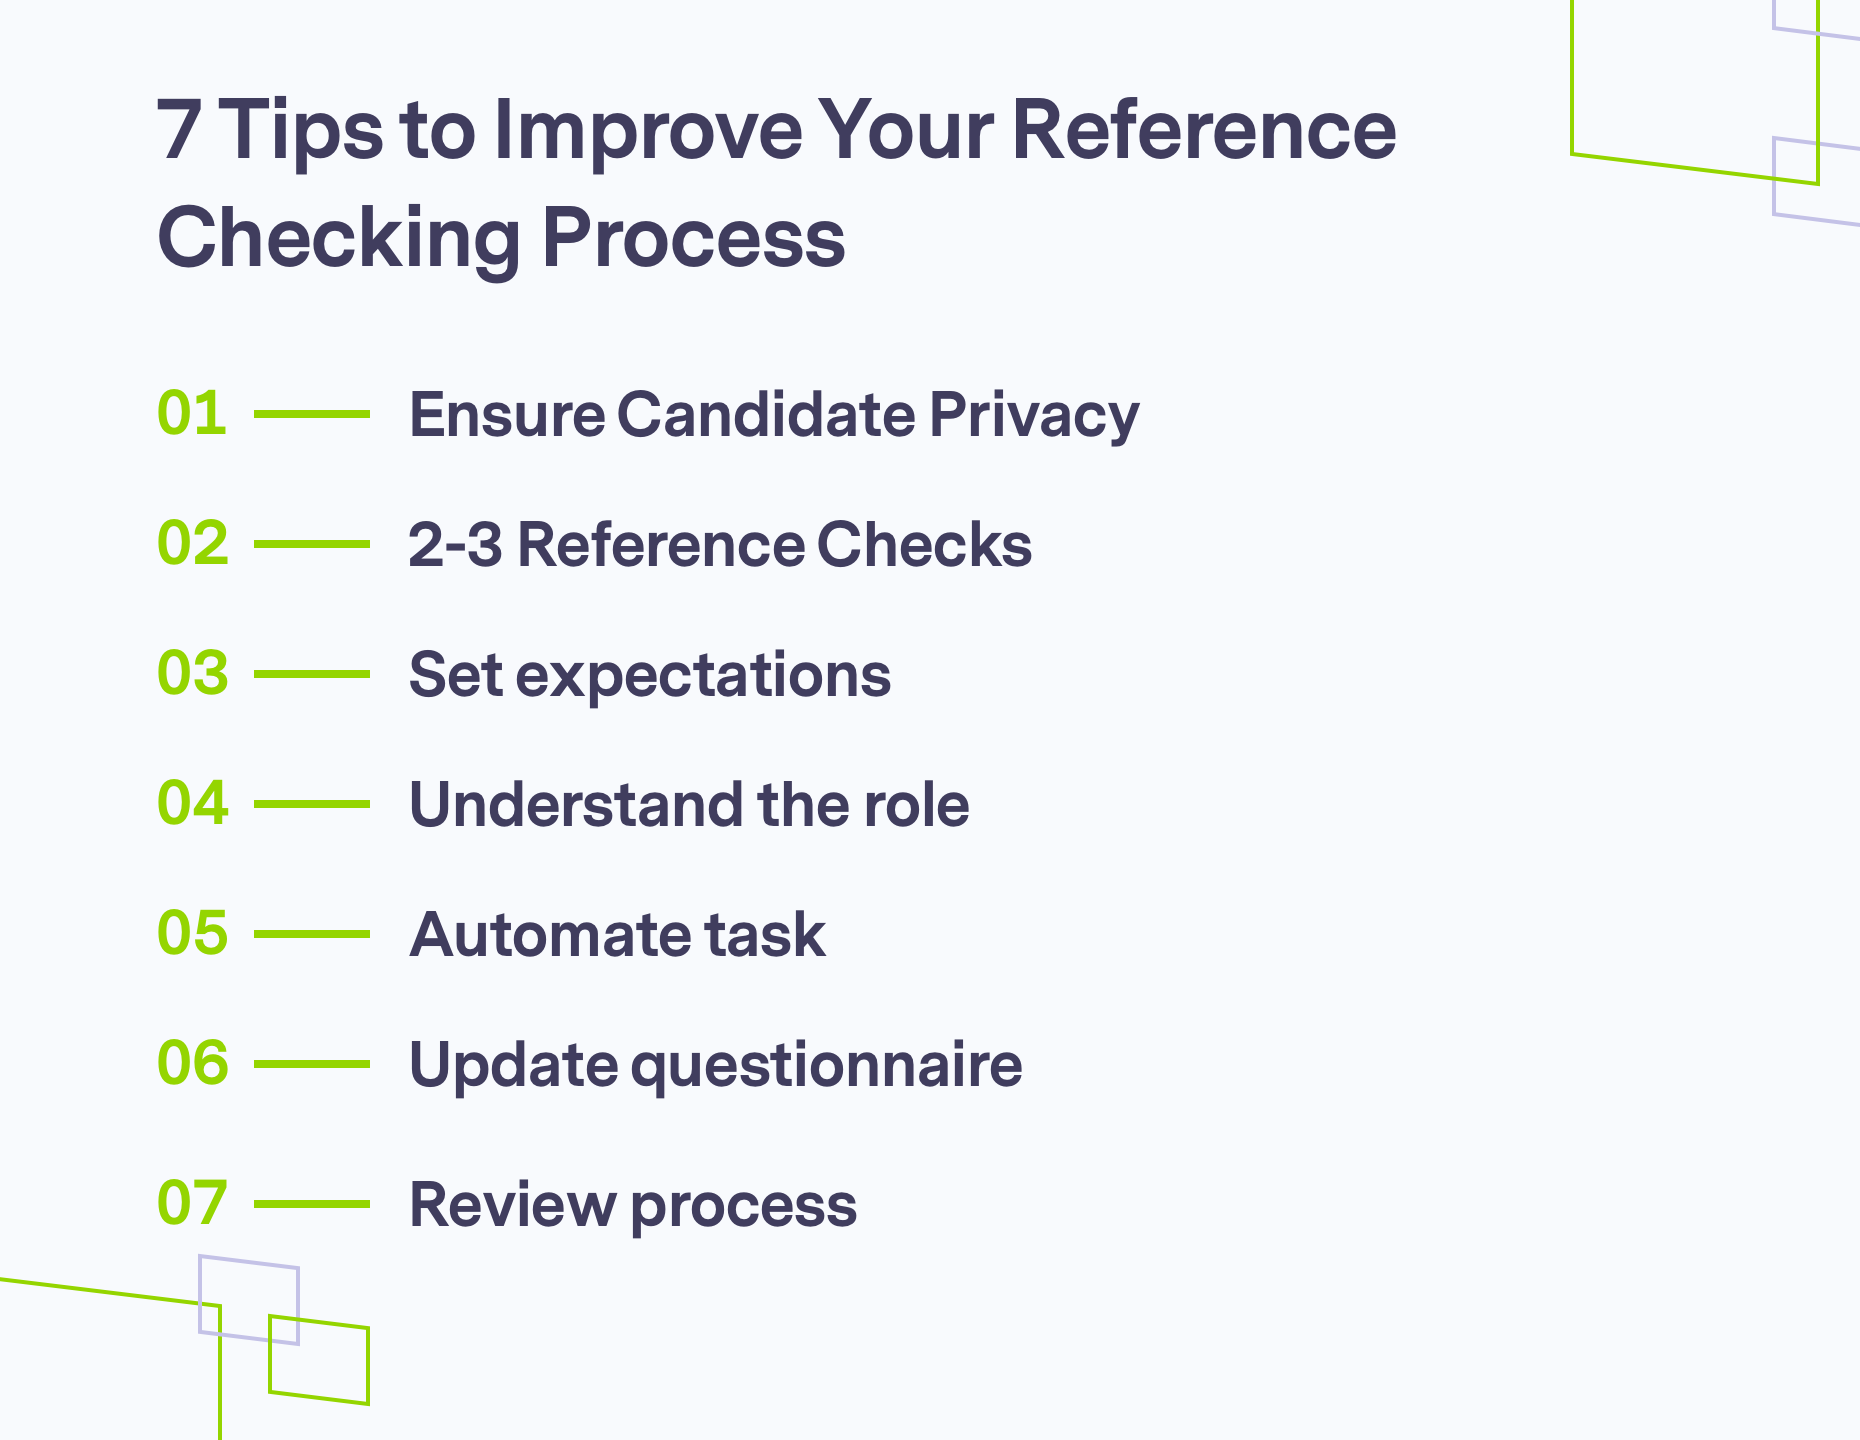 Ways to improving your reference checking process